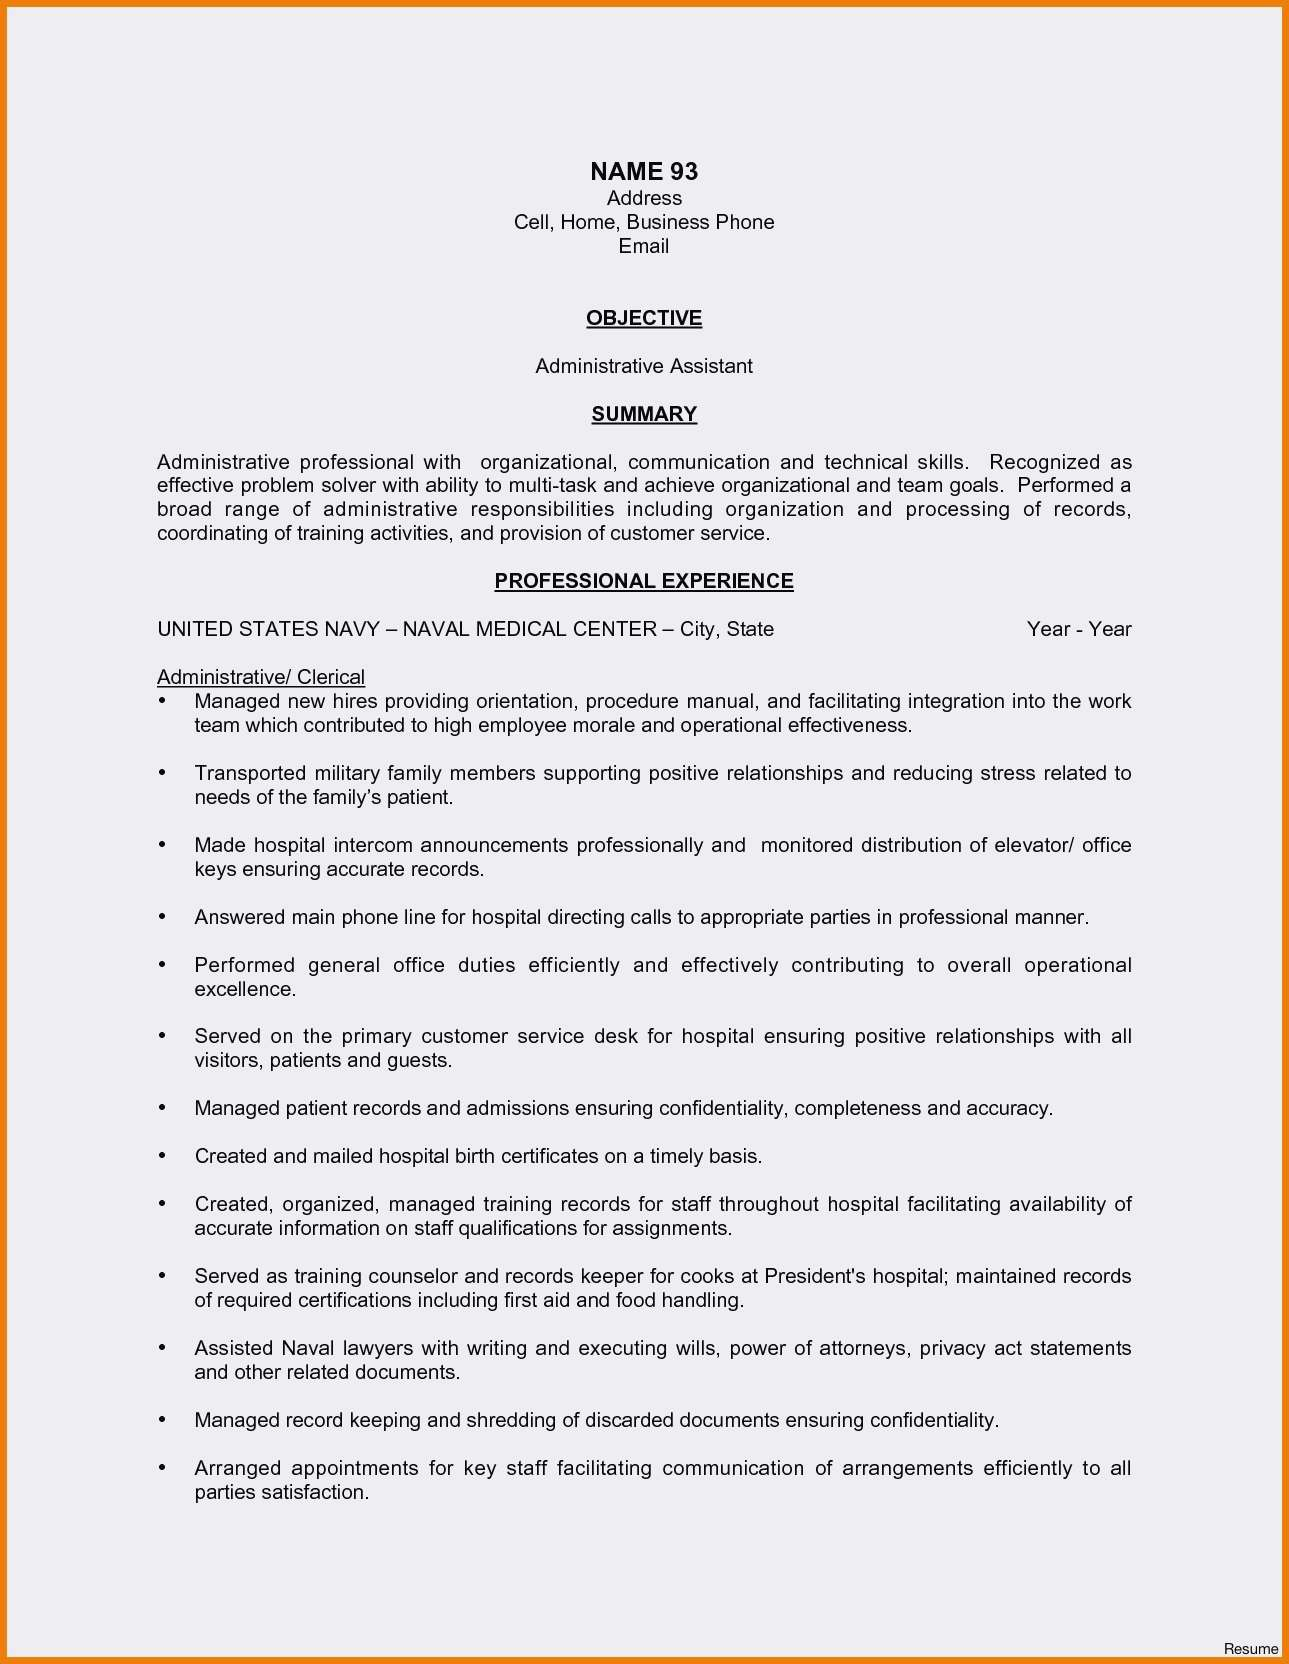 Kinkos Resume Writing Services - 69 Newest Customer Service Resume Template Free Occupylondonsos